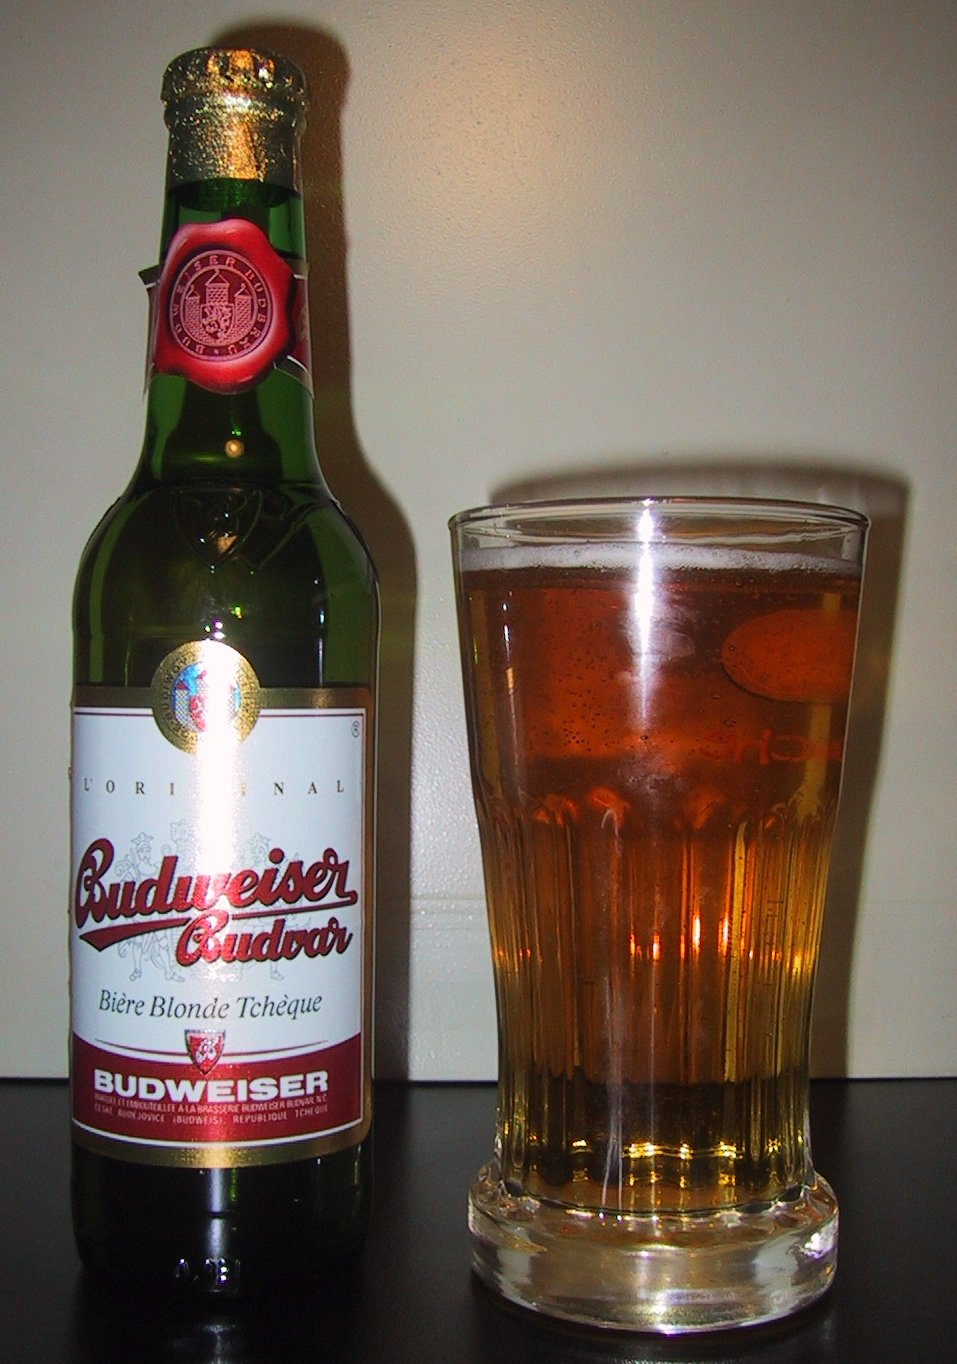 http://upload.wikimedia.org/wikipedia/commons/3/35/Budweiser_Budvar_and_glass.jpg